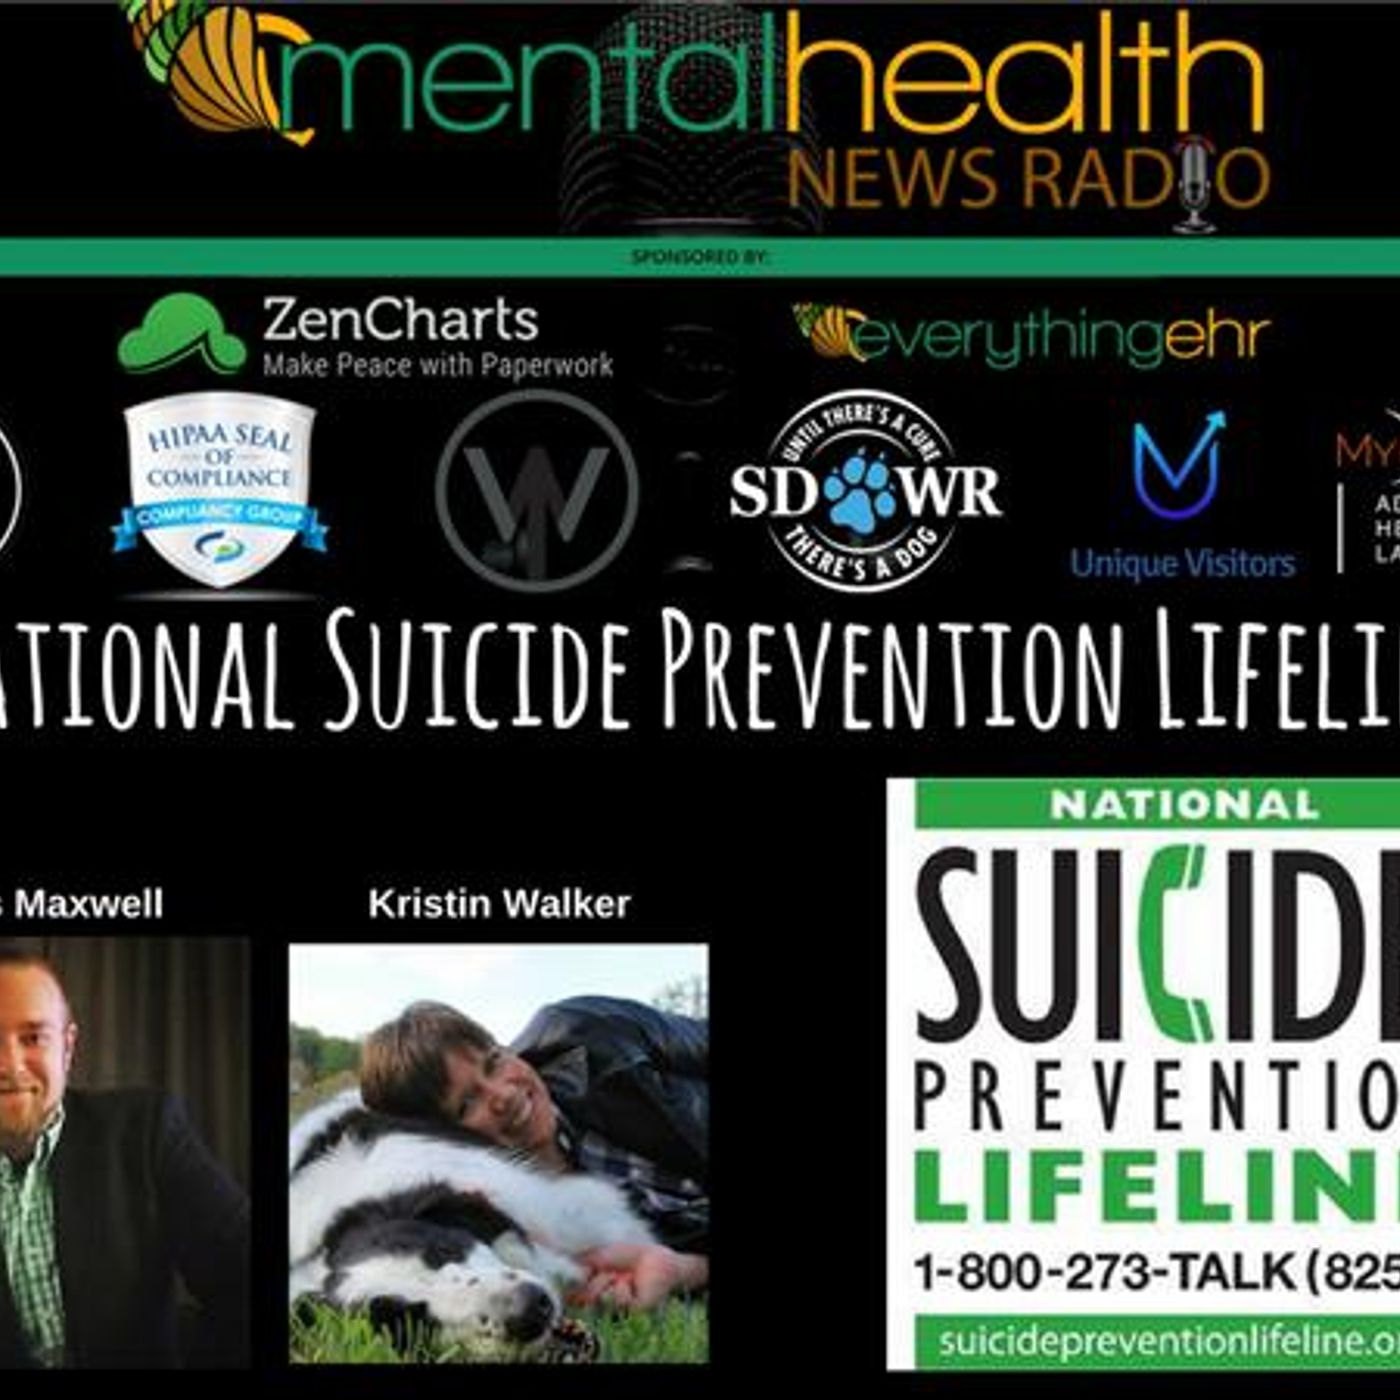 Mental Health News Radio - National Suicide Prevention Lifeline: An Interview with Chris Maxwell